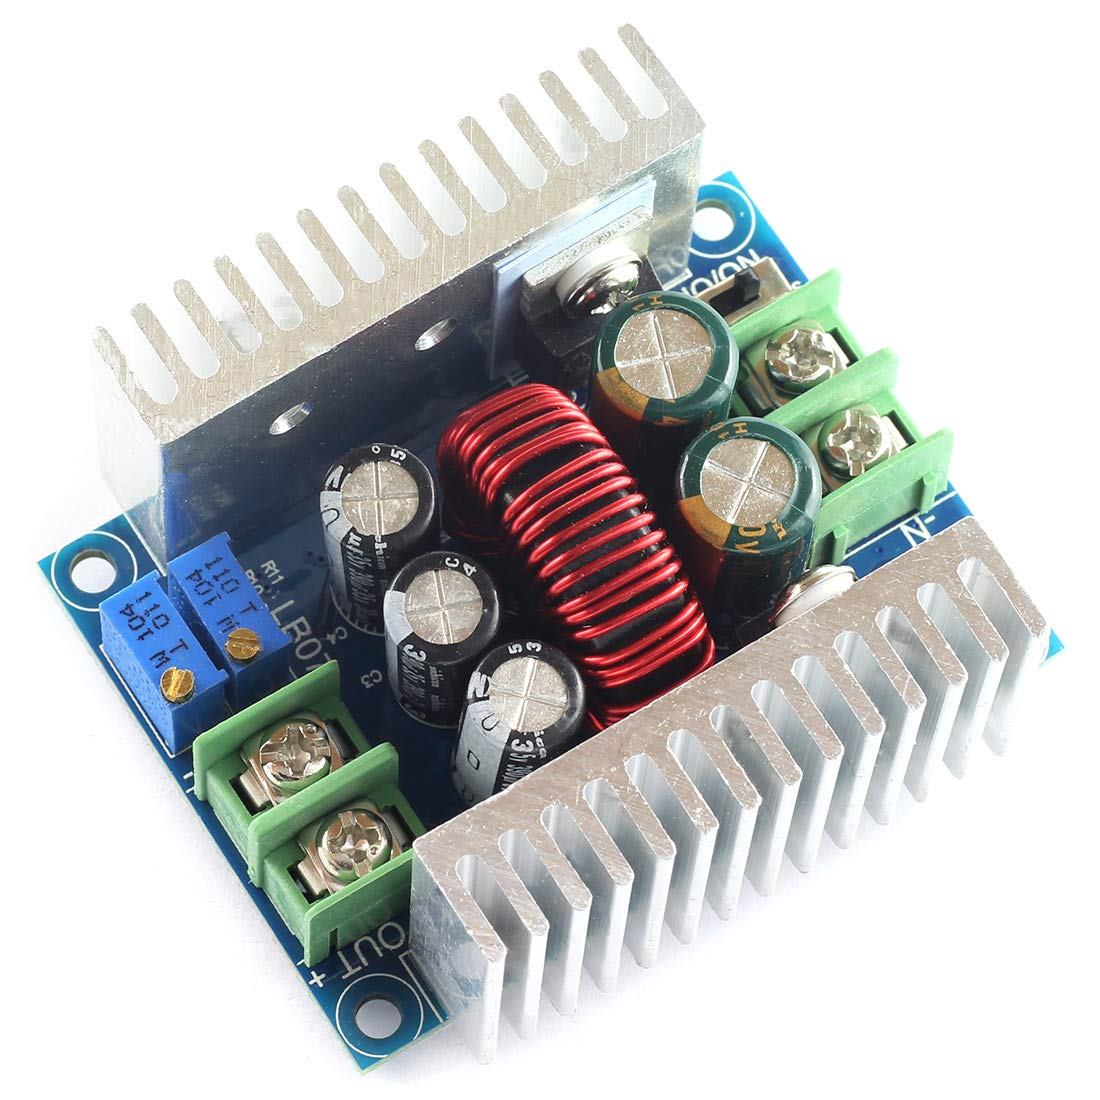 DZS Elec 20A DC-DC Step Down Buck Converter Module 6-40V to1.2-35V Adjustable Constant Voltage Constant Current Power Supply 300W Large Power Voltage Regulator Synchronous Rectification LED Drive